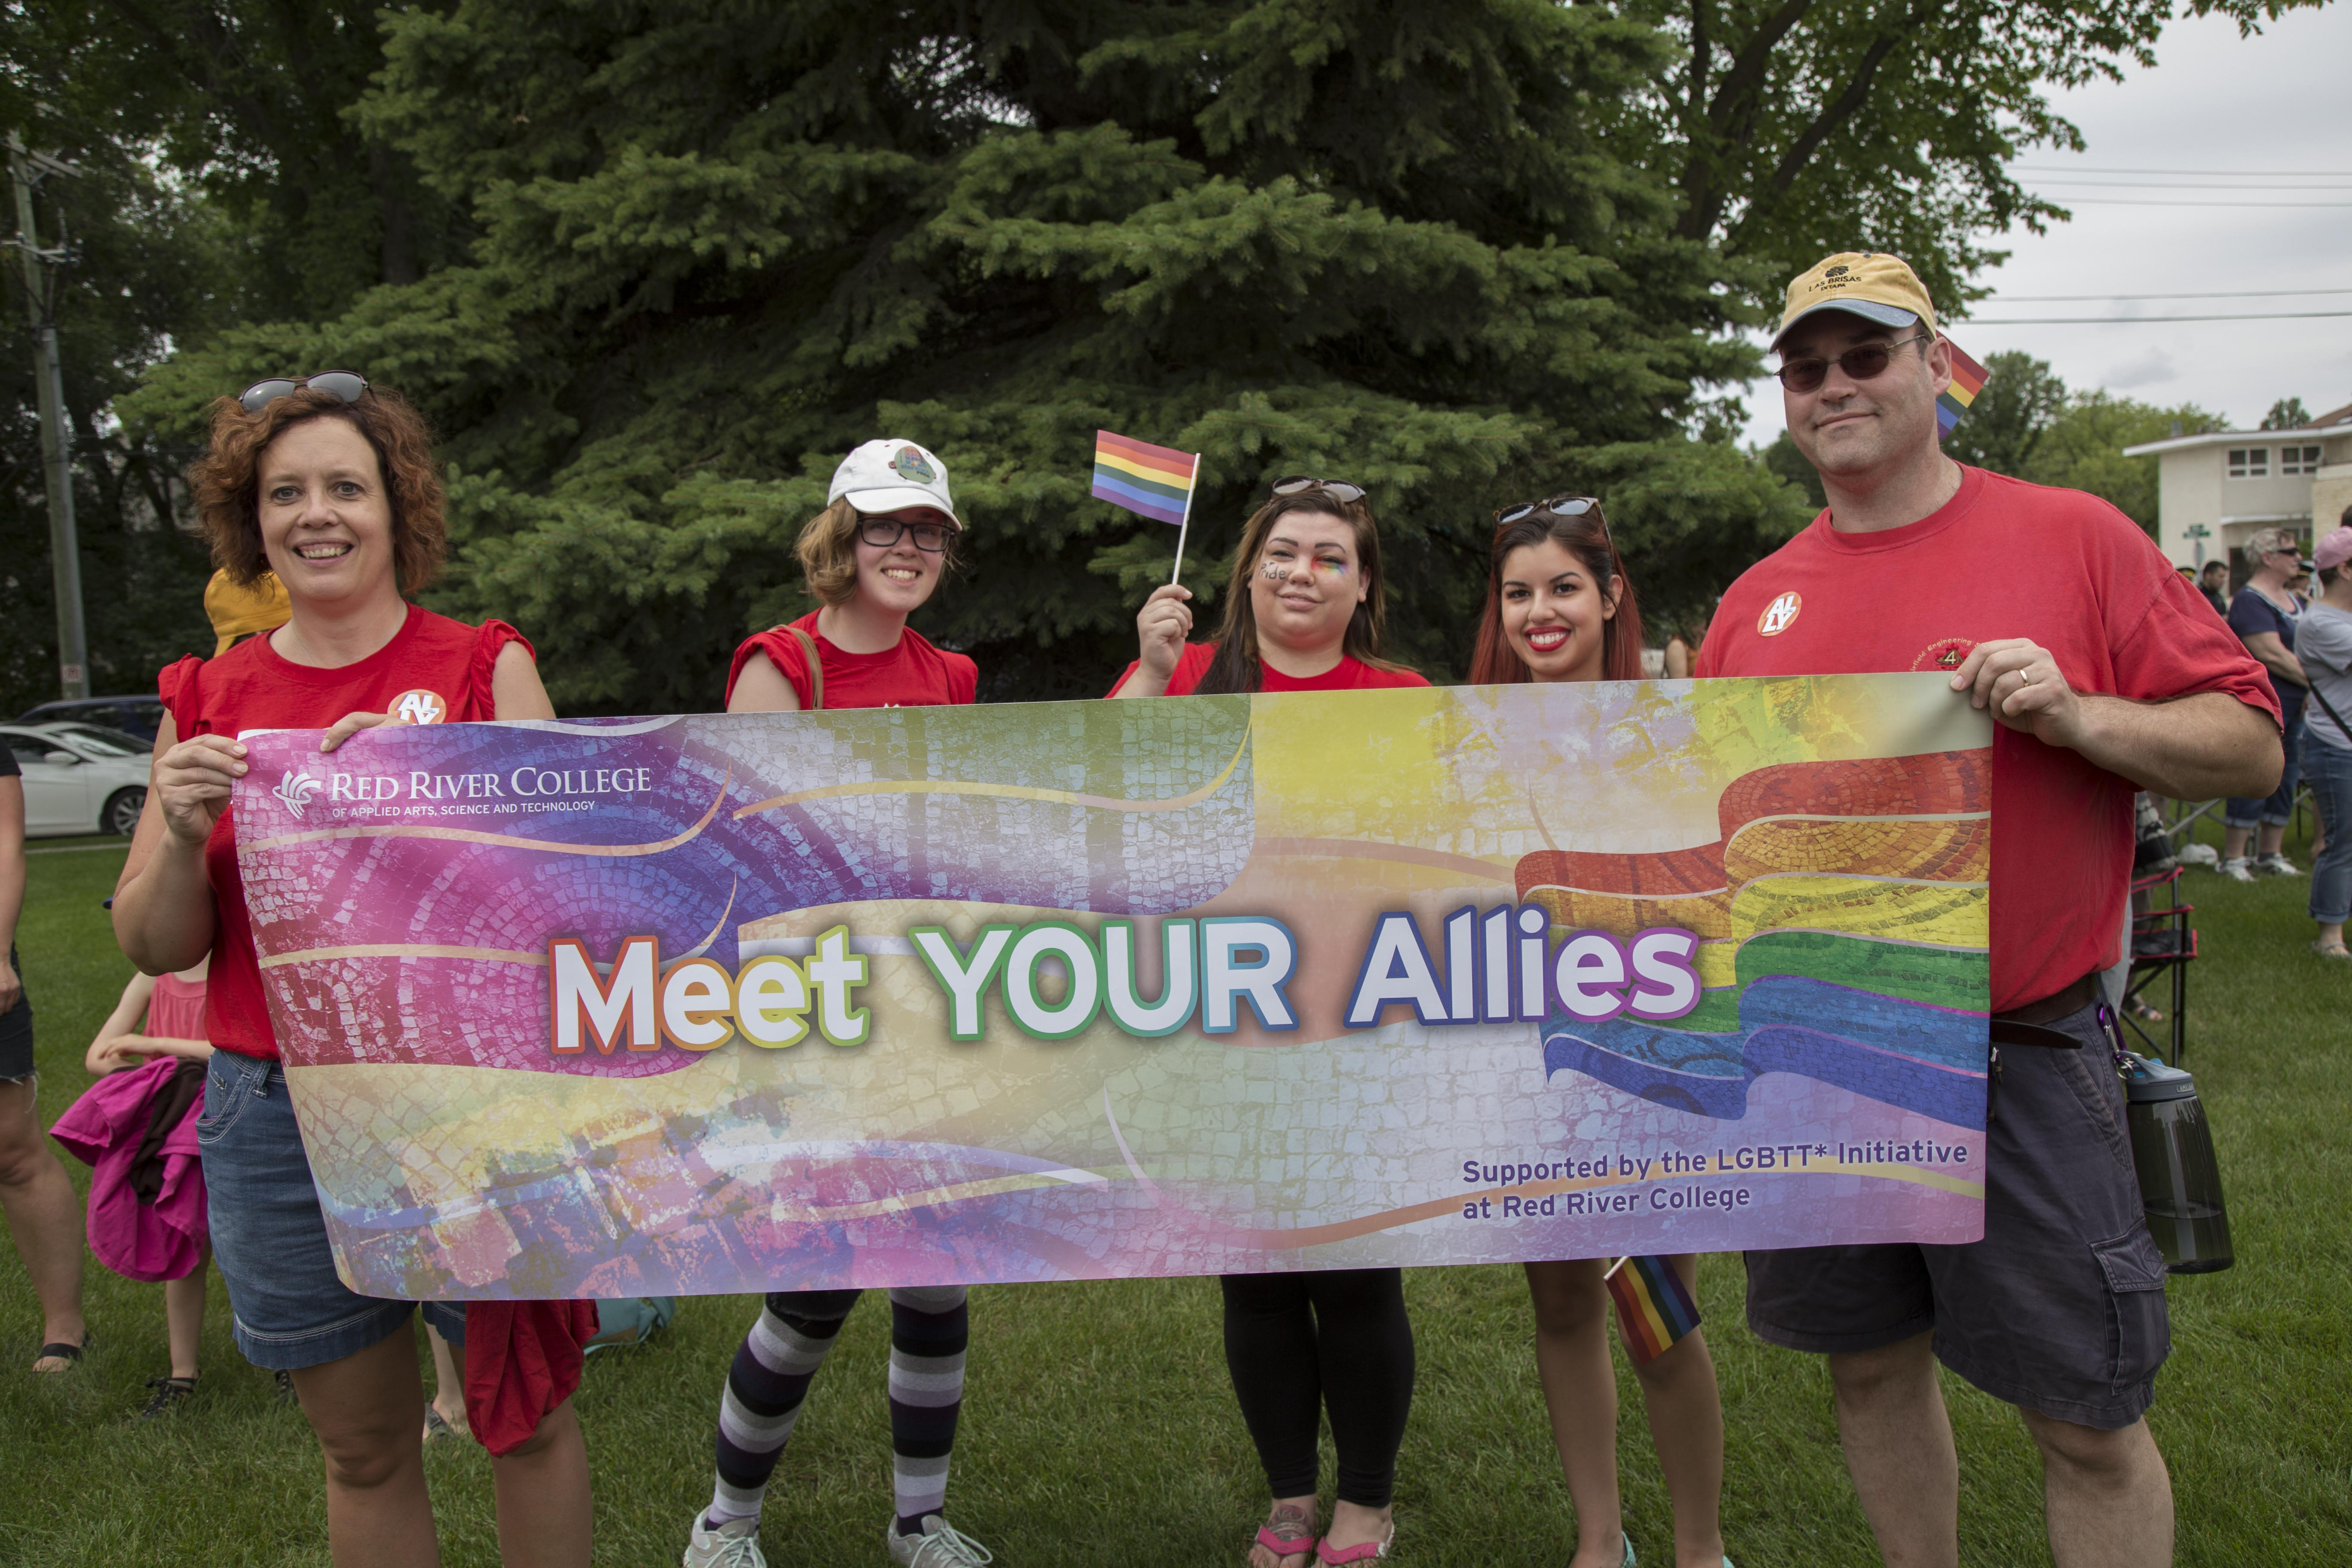 Despite controversy, Red River College's LGBTT* Initiative breaks ground by participating in Steinbach, Manitoba's first ever Pride Parade on July 9, 2016. SUPPLIED/ Red River College